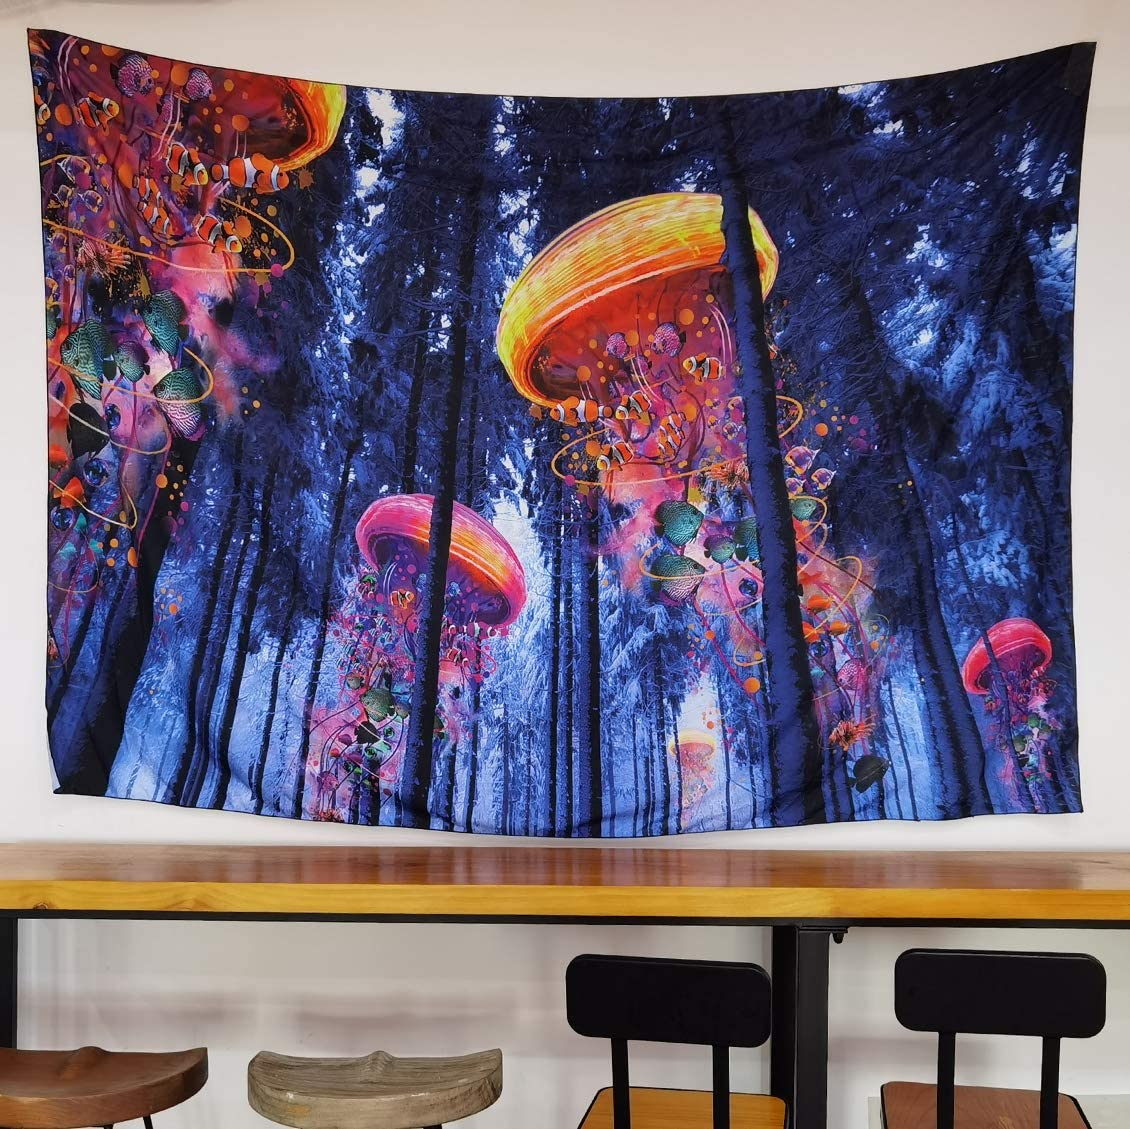 NovForth Psychedelic Art Tapestry for Wall Hanging, Wall Fabric for Bedroom, Wall Blankets for Bedroom Trippy, Hippie Tapestry for Living Room, Forest Cloth Wall Hanging